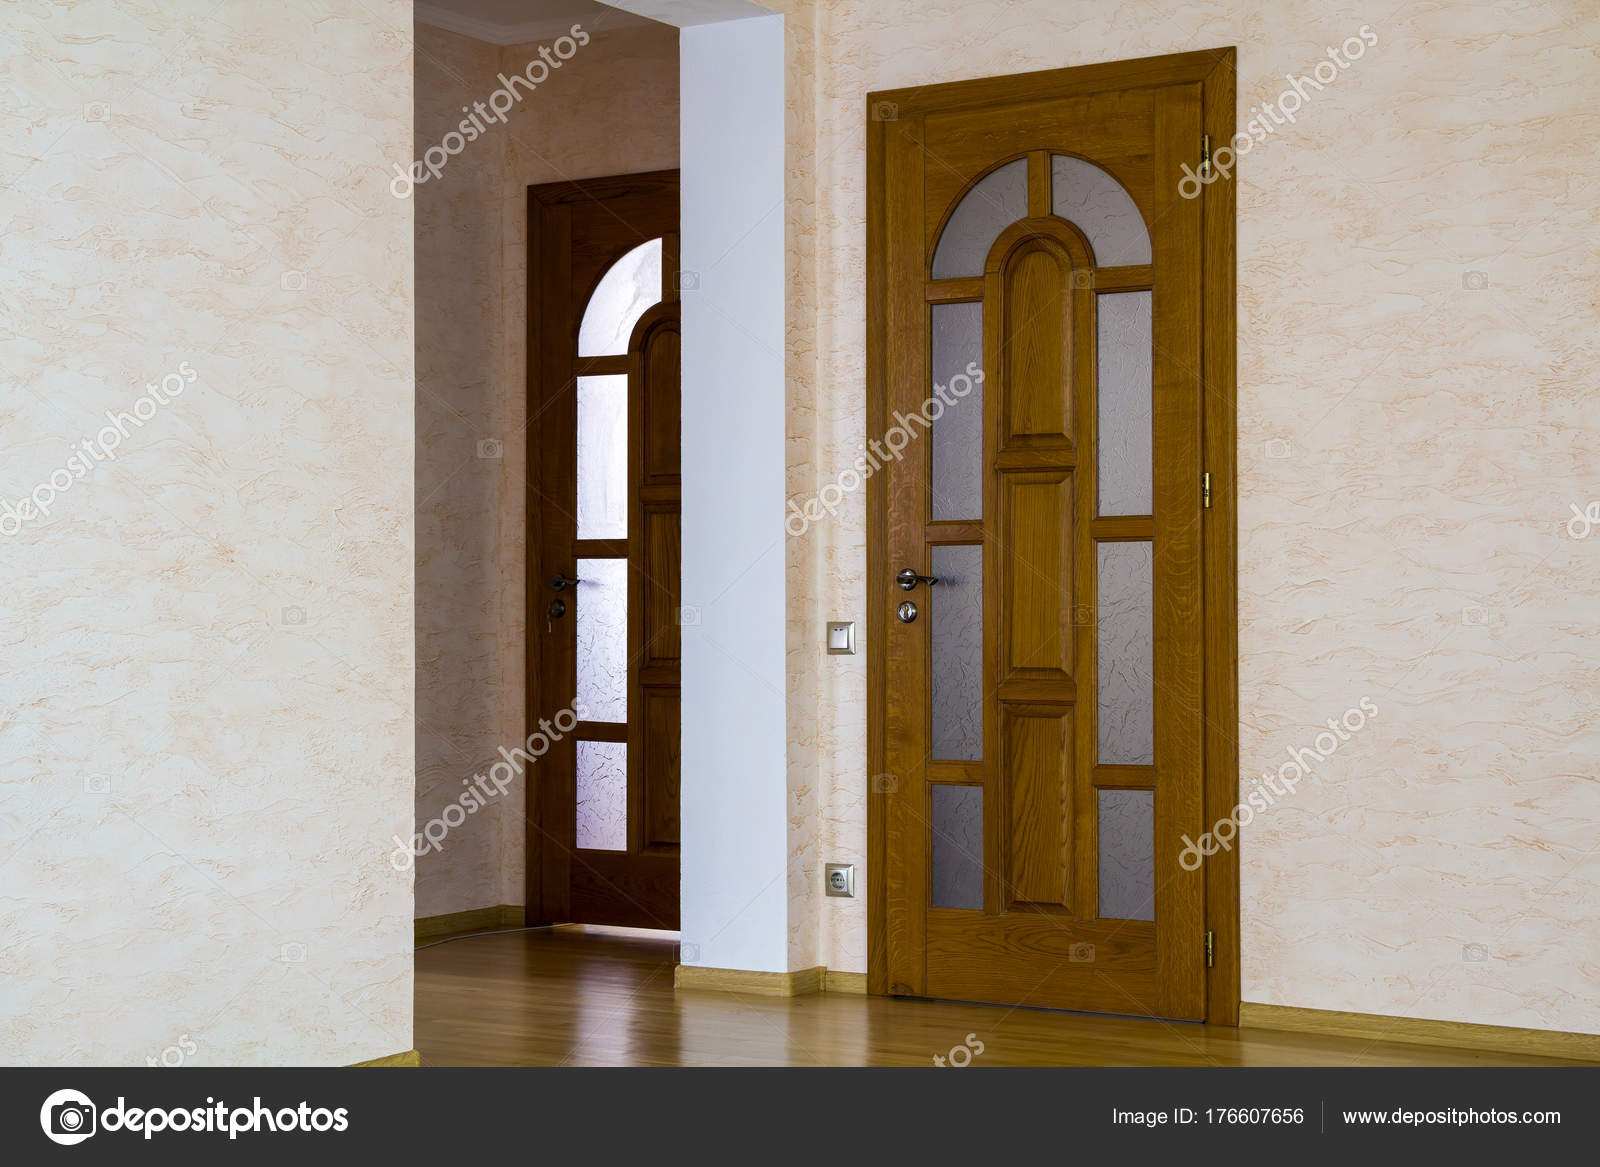 Interior of modern expensive house of apartment with wooden door u2014 Stock Photo & Interior of modern expensive house of apartment with wooden door ...